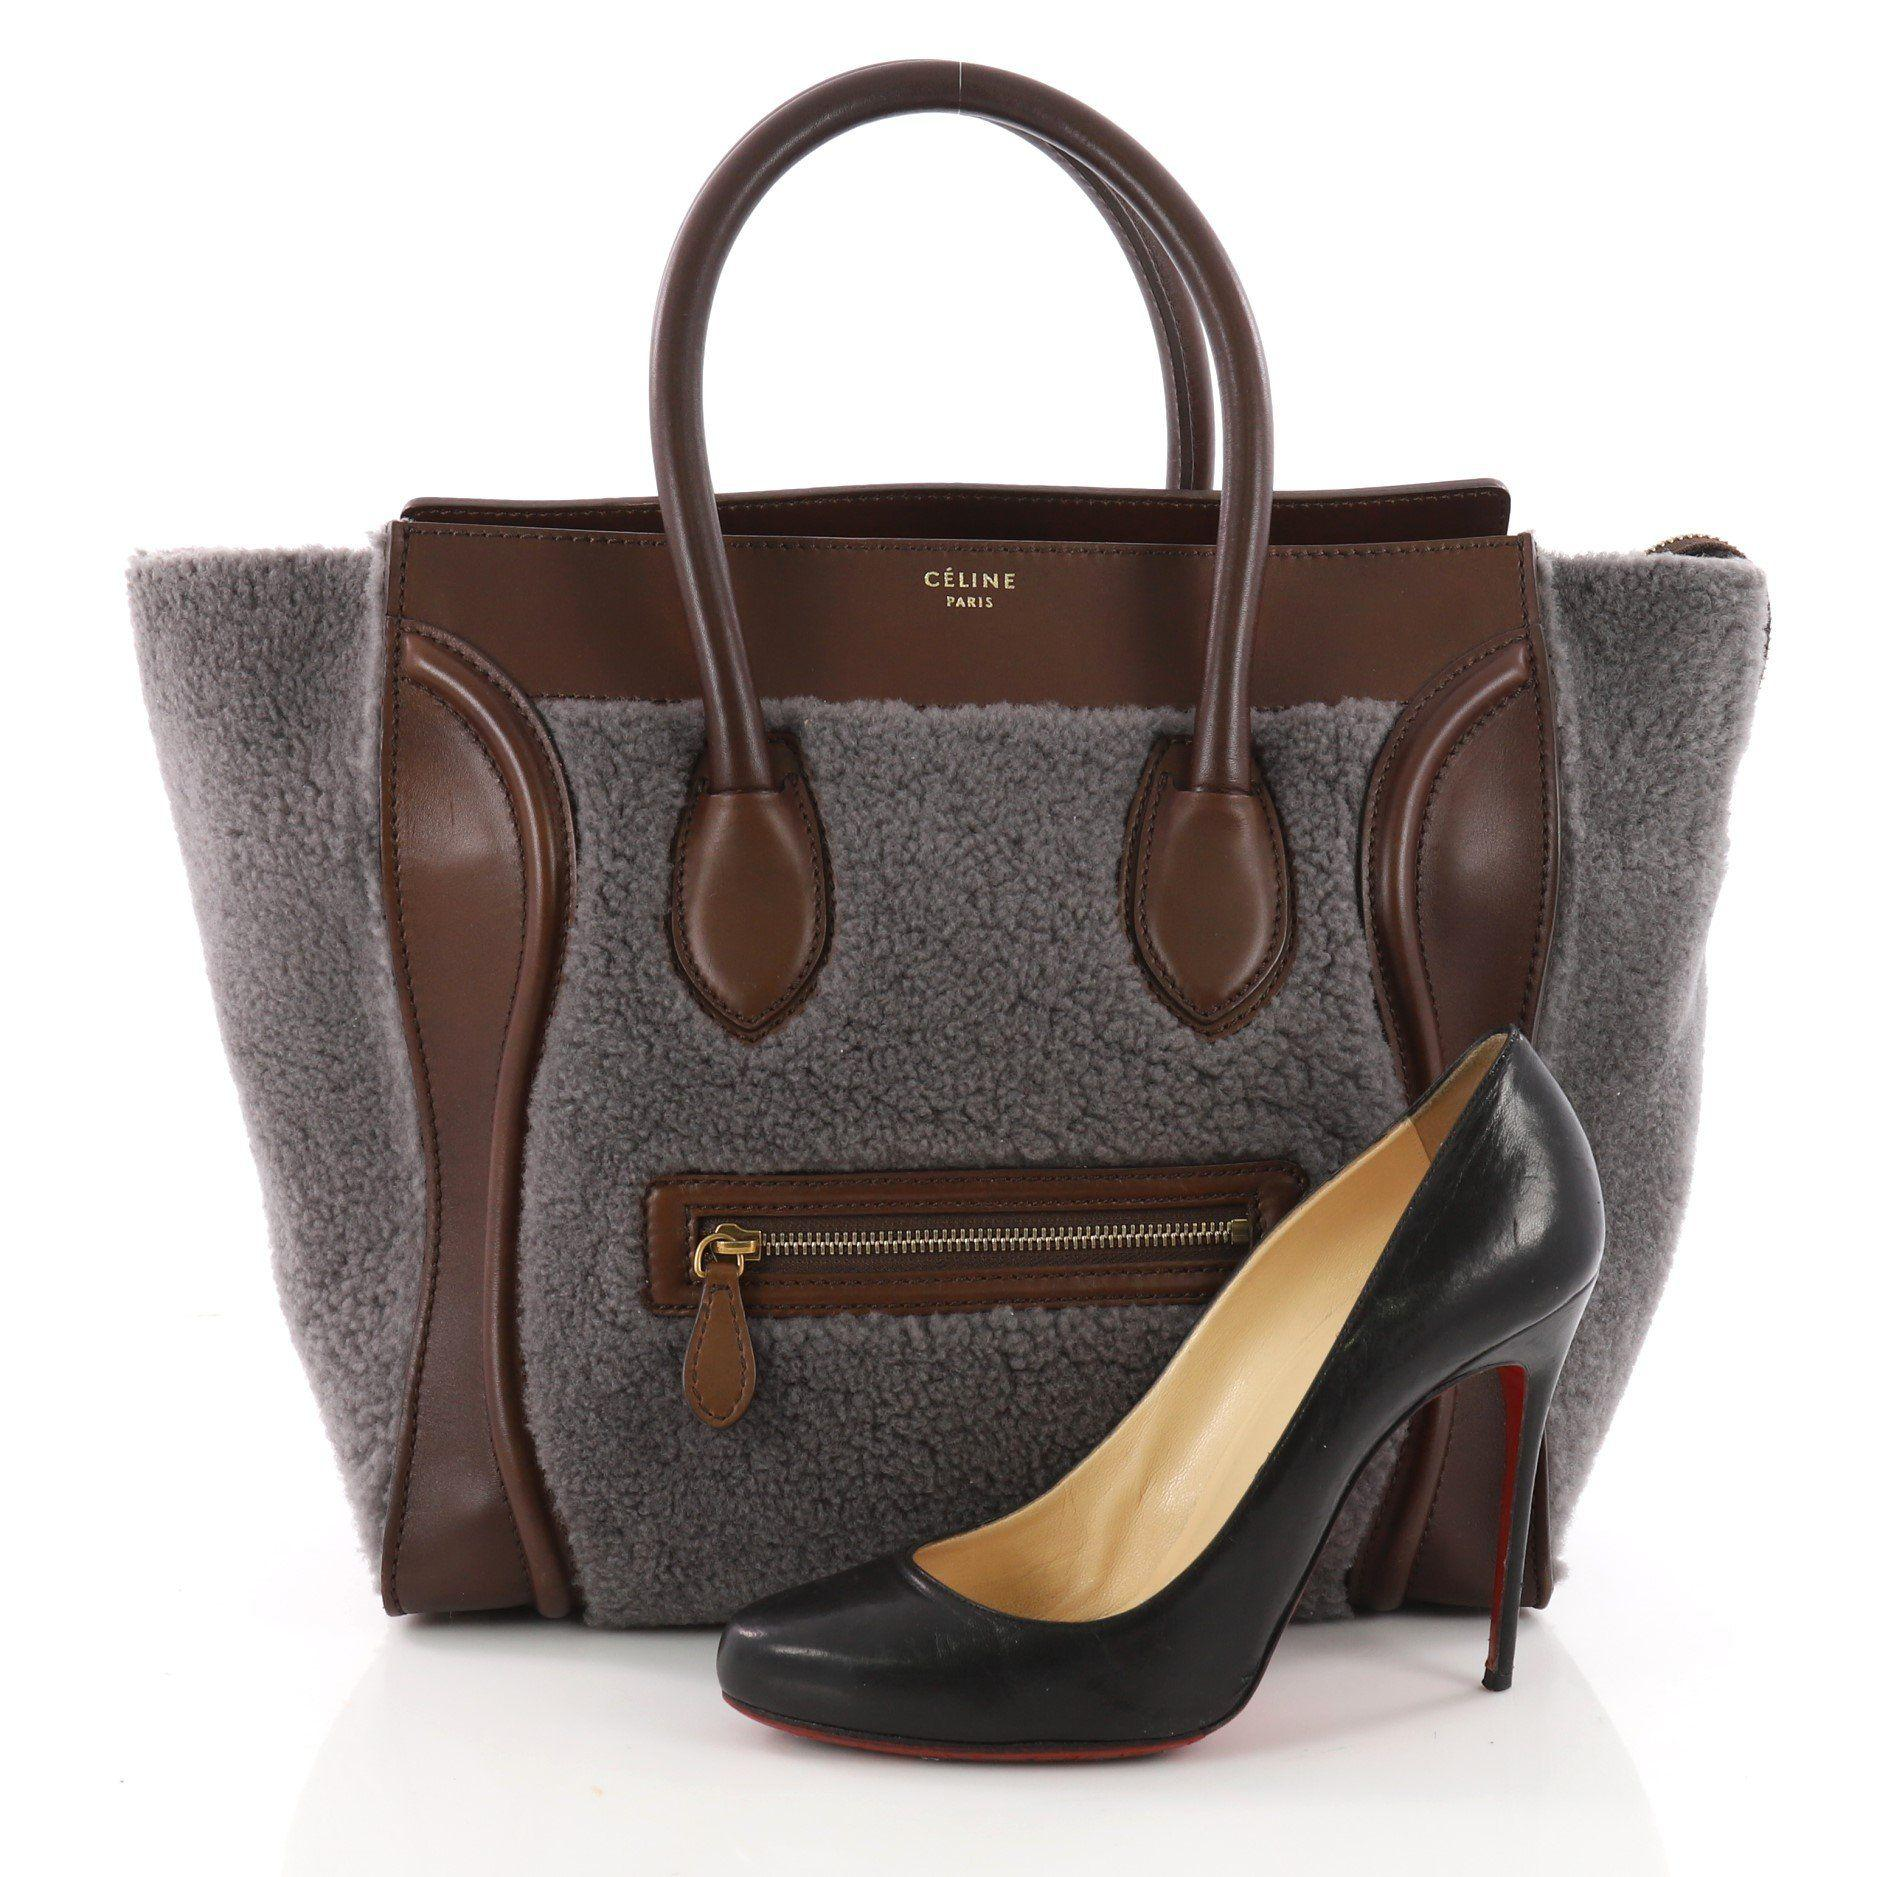 8c8a8a84420 Lyst - Céline Pre Owned Bicolor Luggage Handbag Shearling Mini in Brown